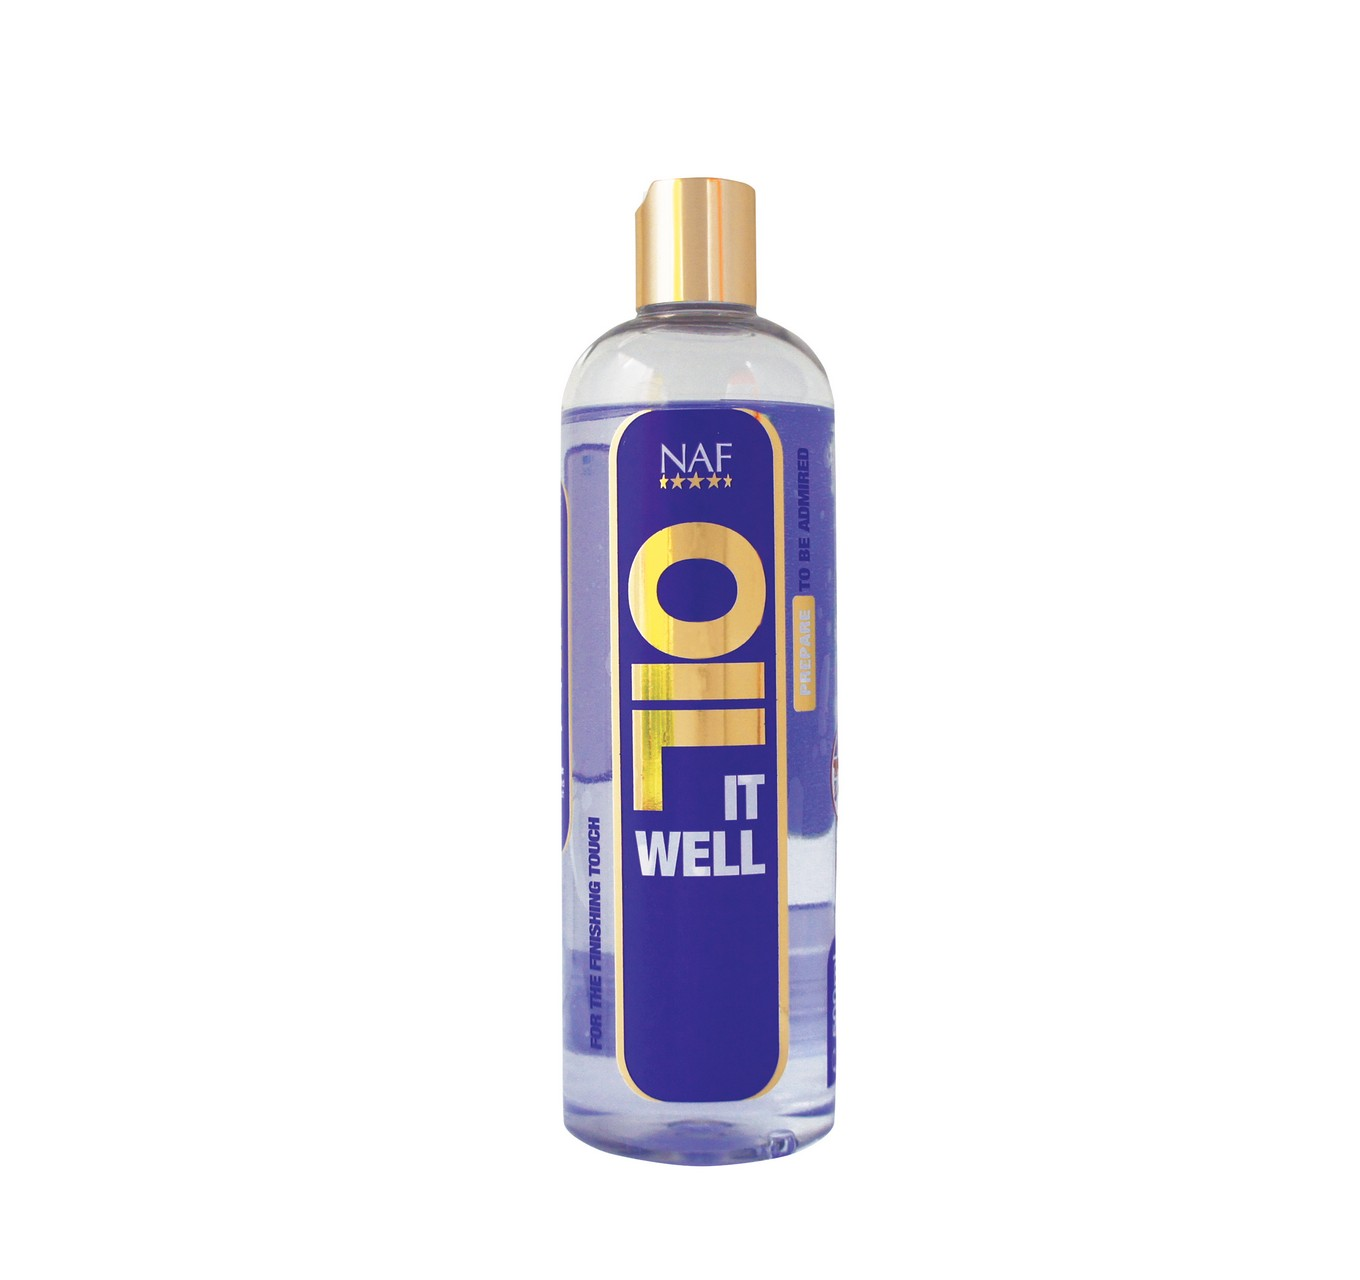 Oil It Well 500ml